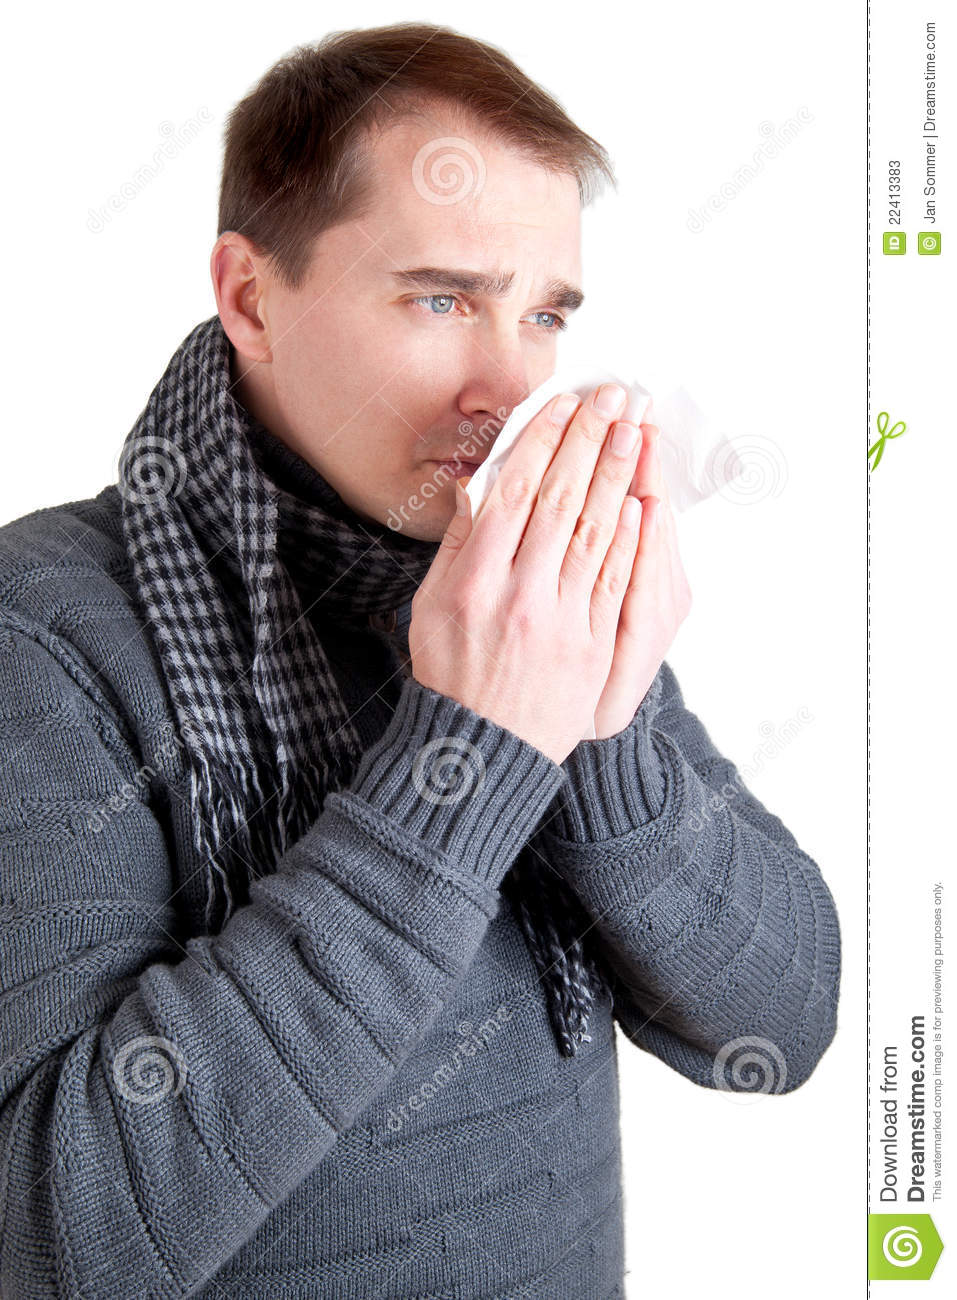 how to stop sneezing cold